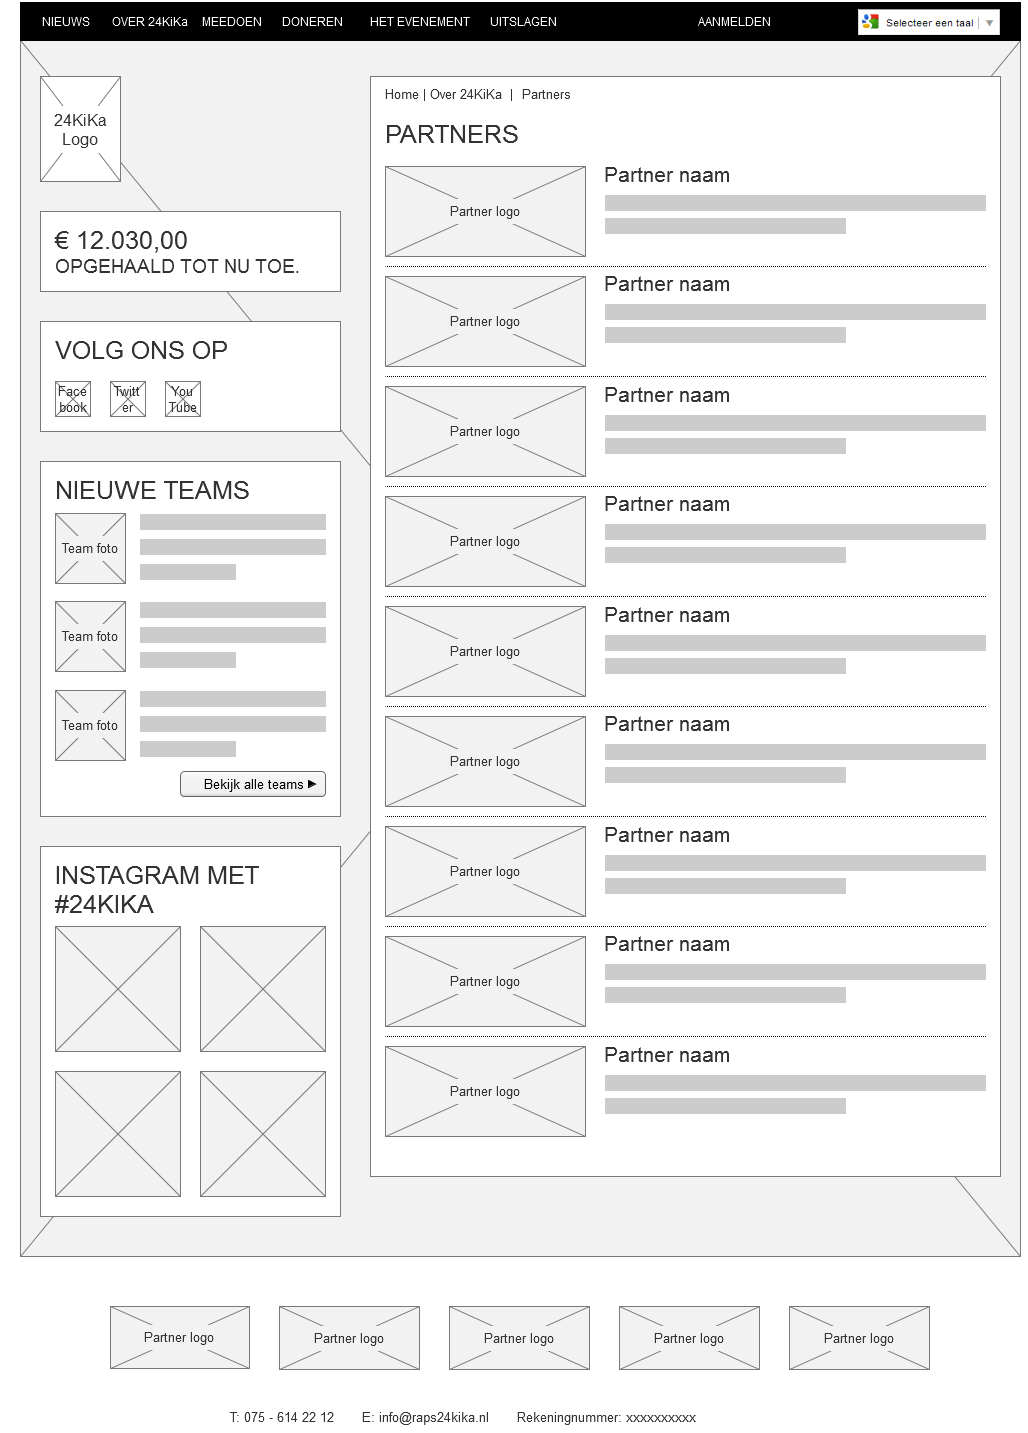 vanity-tracy_project_2013_24kika_wireframes_05_partners-overview